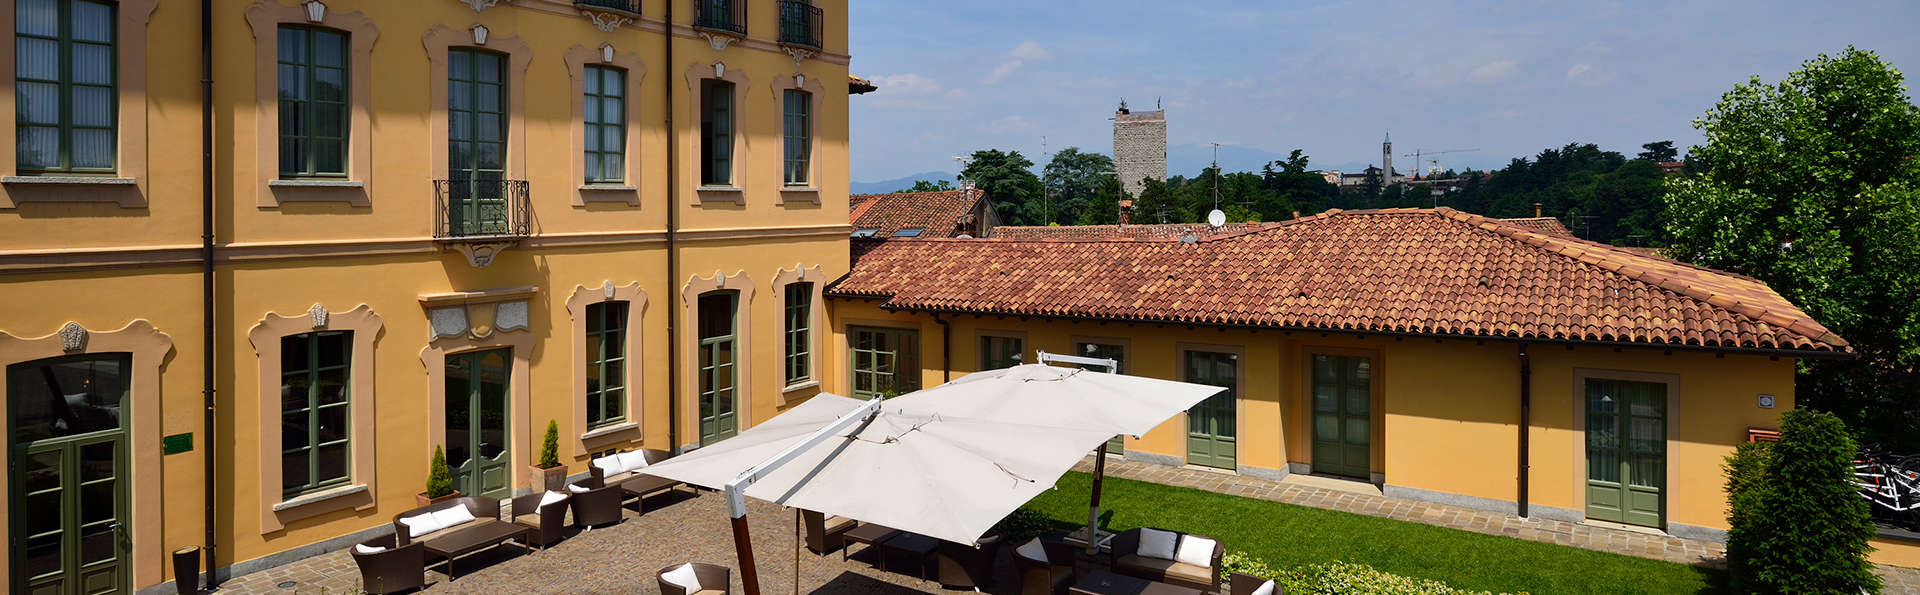 BEST WESTERN Villa Appiani - Edit_Terrace2.jpg